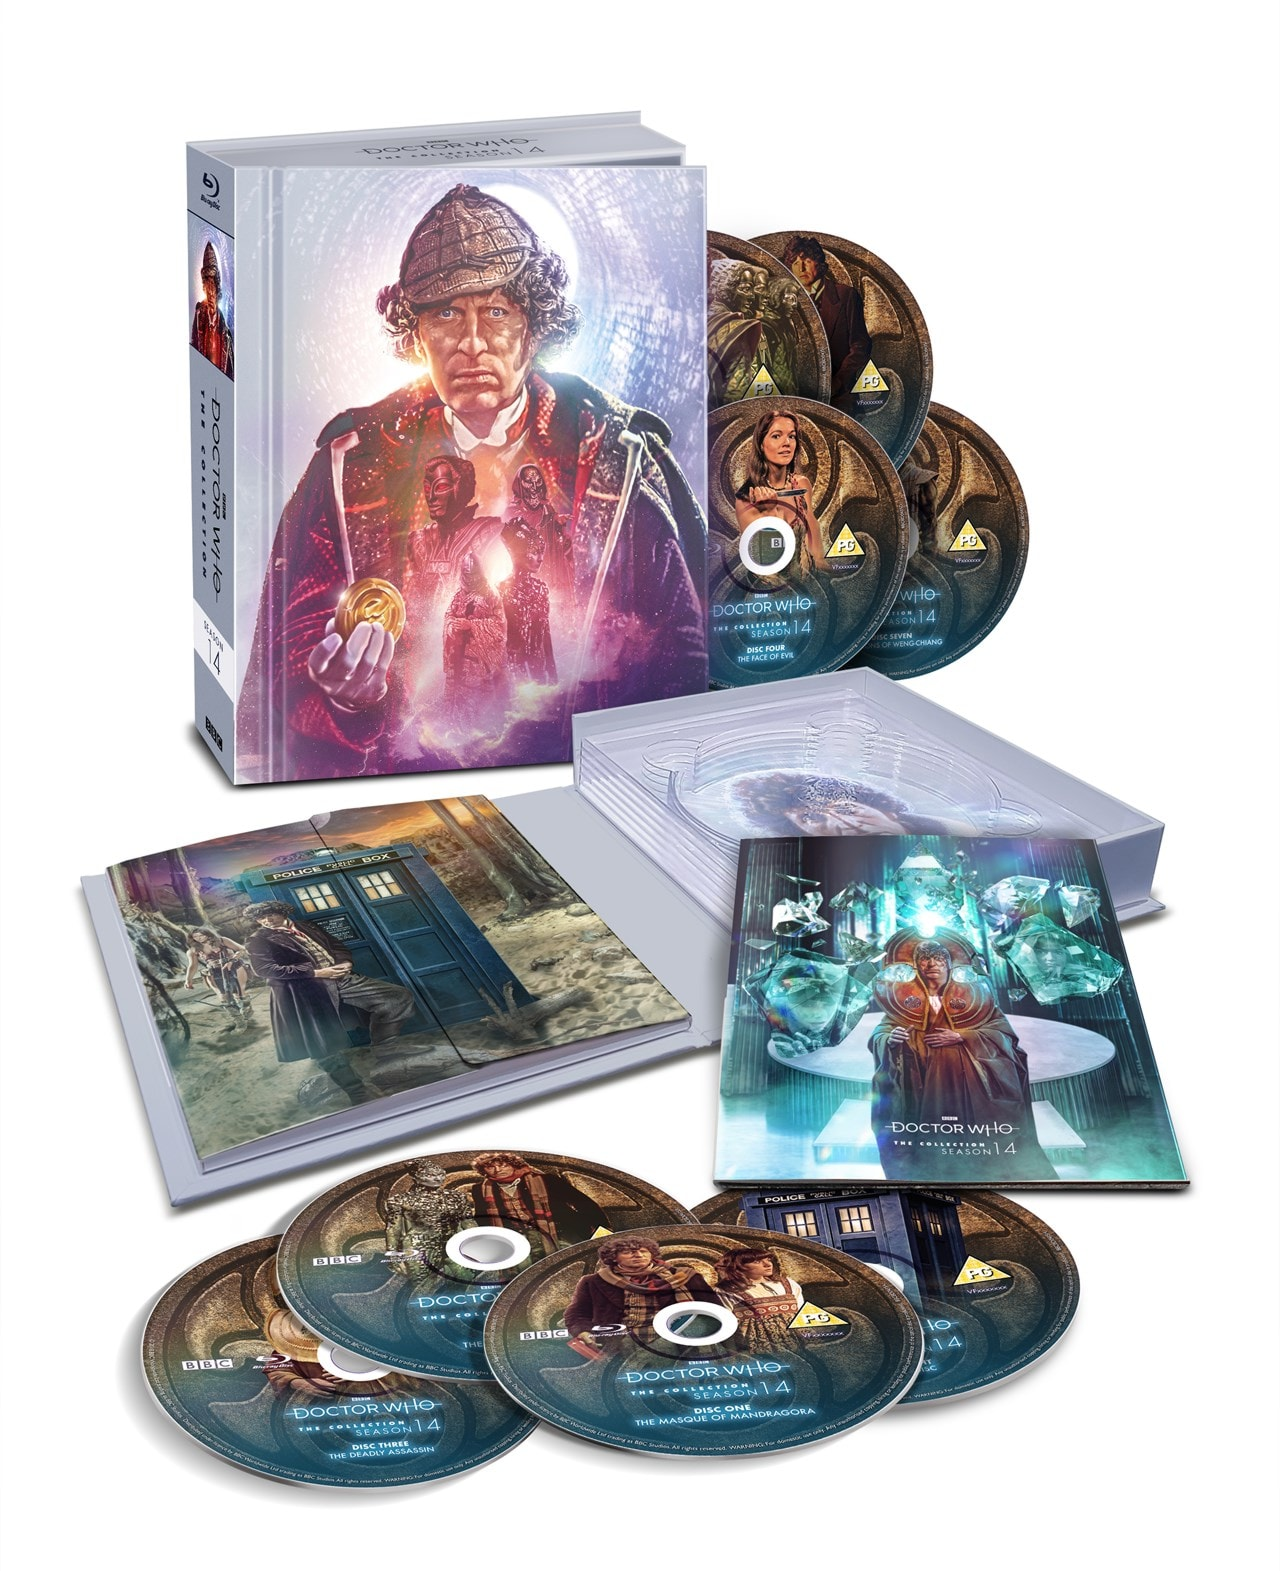 Doctor Who: The Collection - Season 14 Limited Edition Box Set - 1